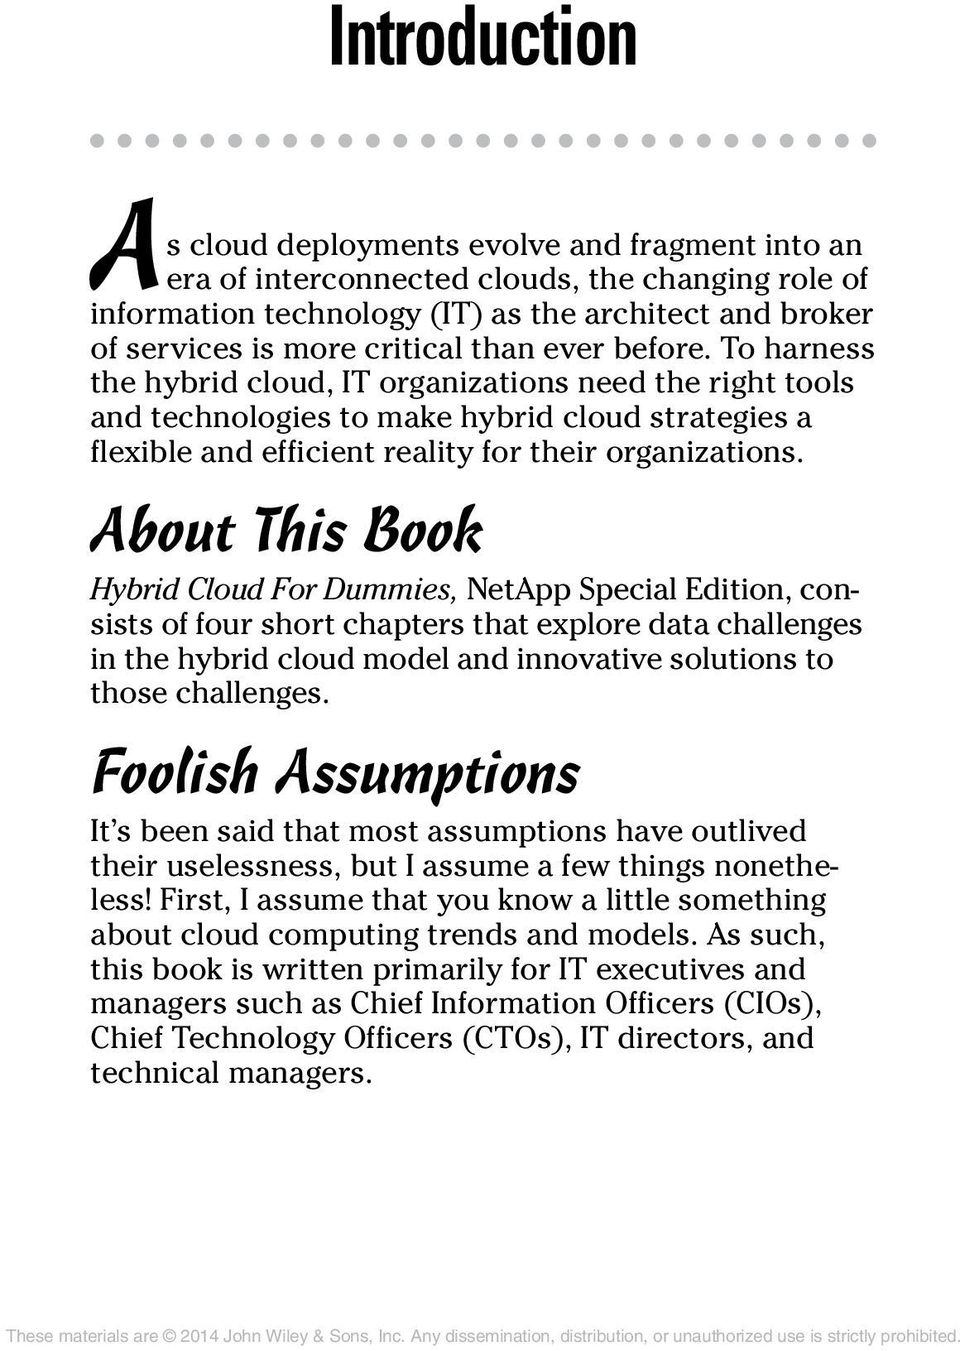 About This Book Hybrid Cloud For Dummies, NetApp Special Edition, consists of four short chapters that explore data challenges in the hybrid cloud model and innovative solutions to those challenges.